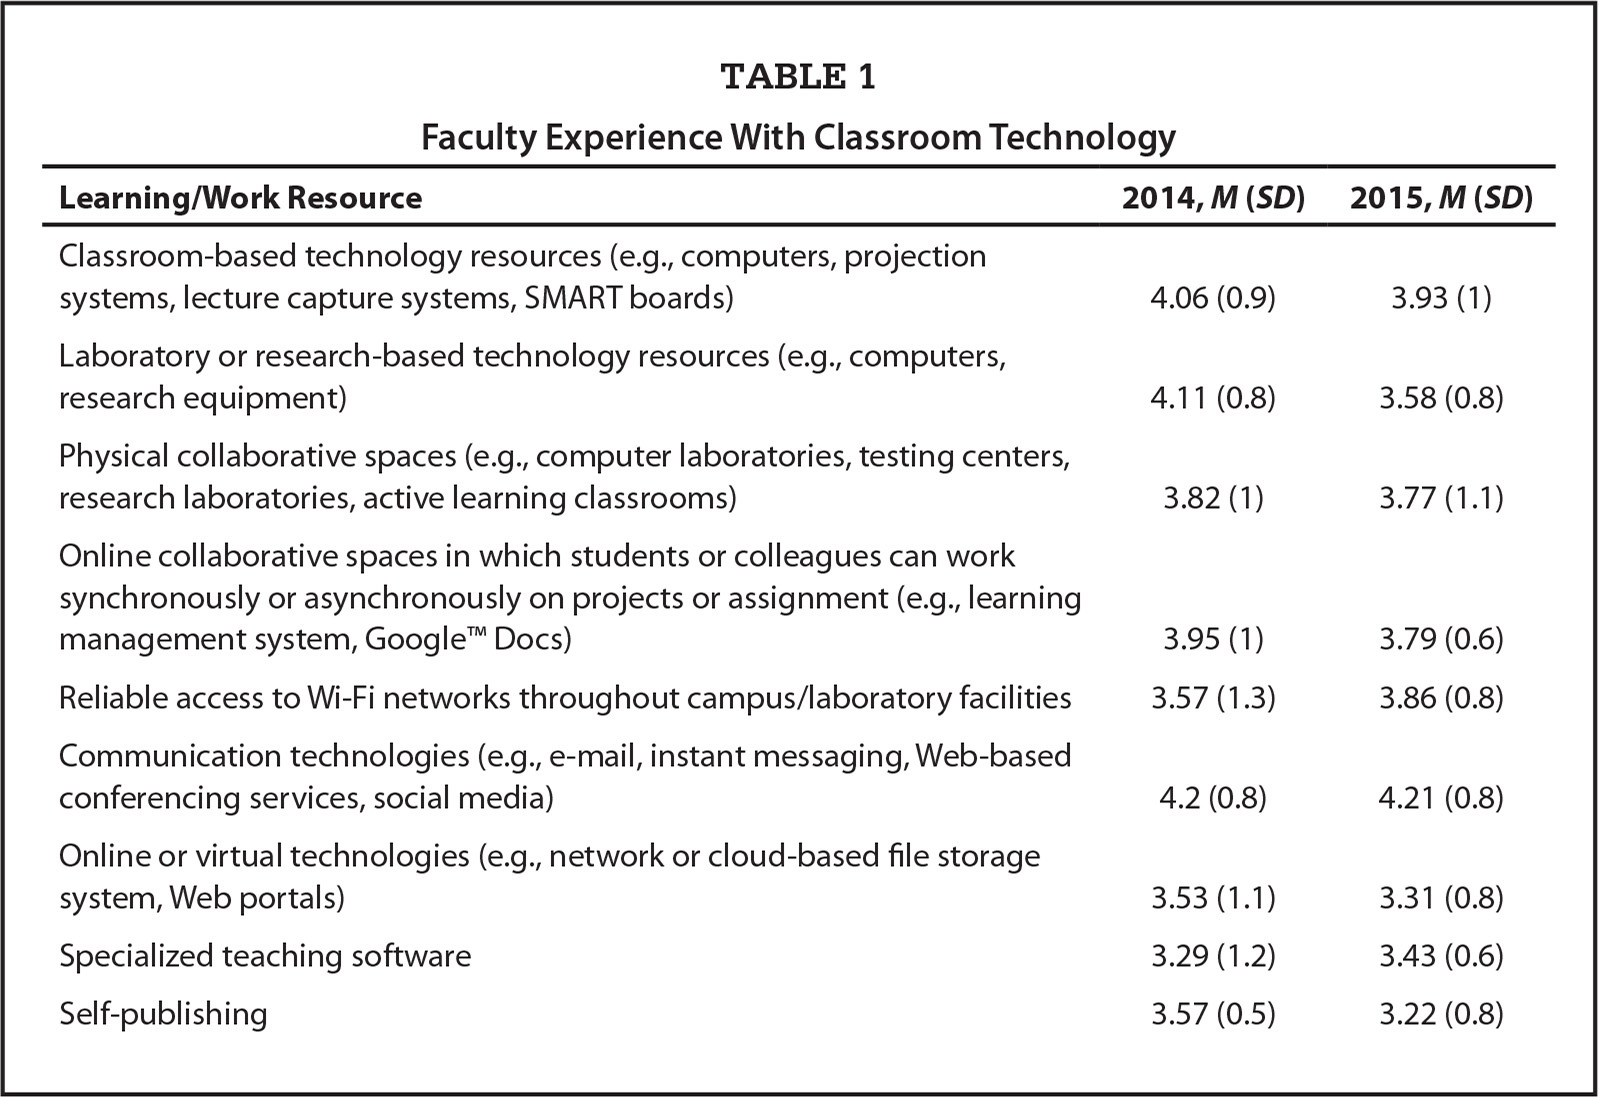 Faculty Experience With Classroom Technology